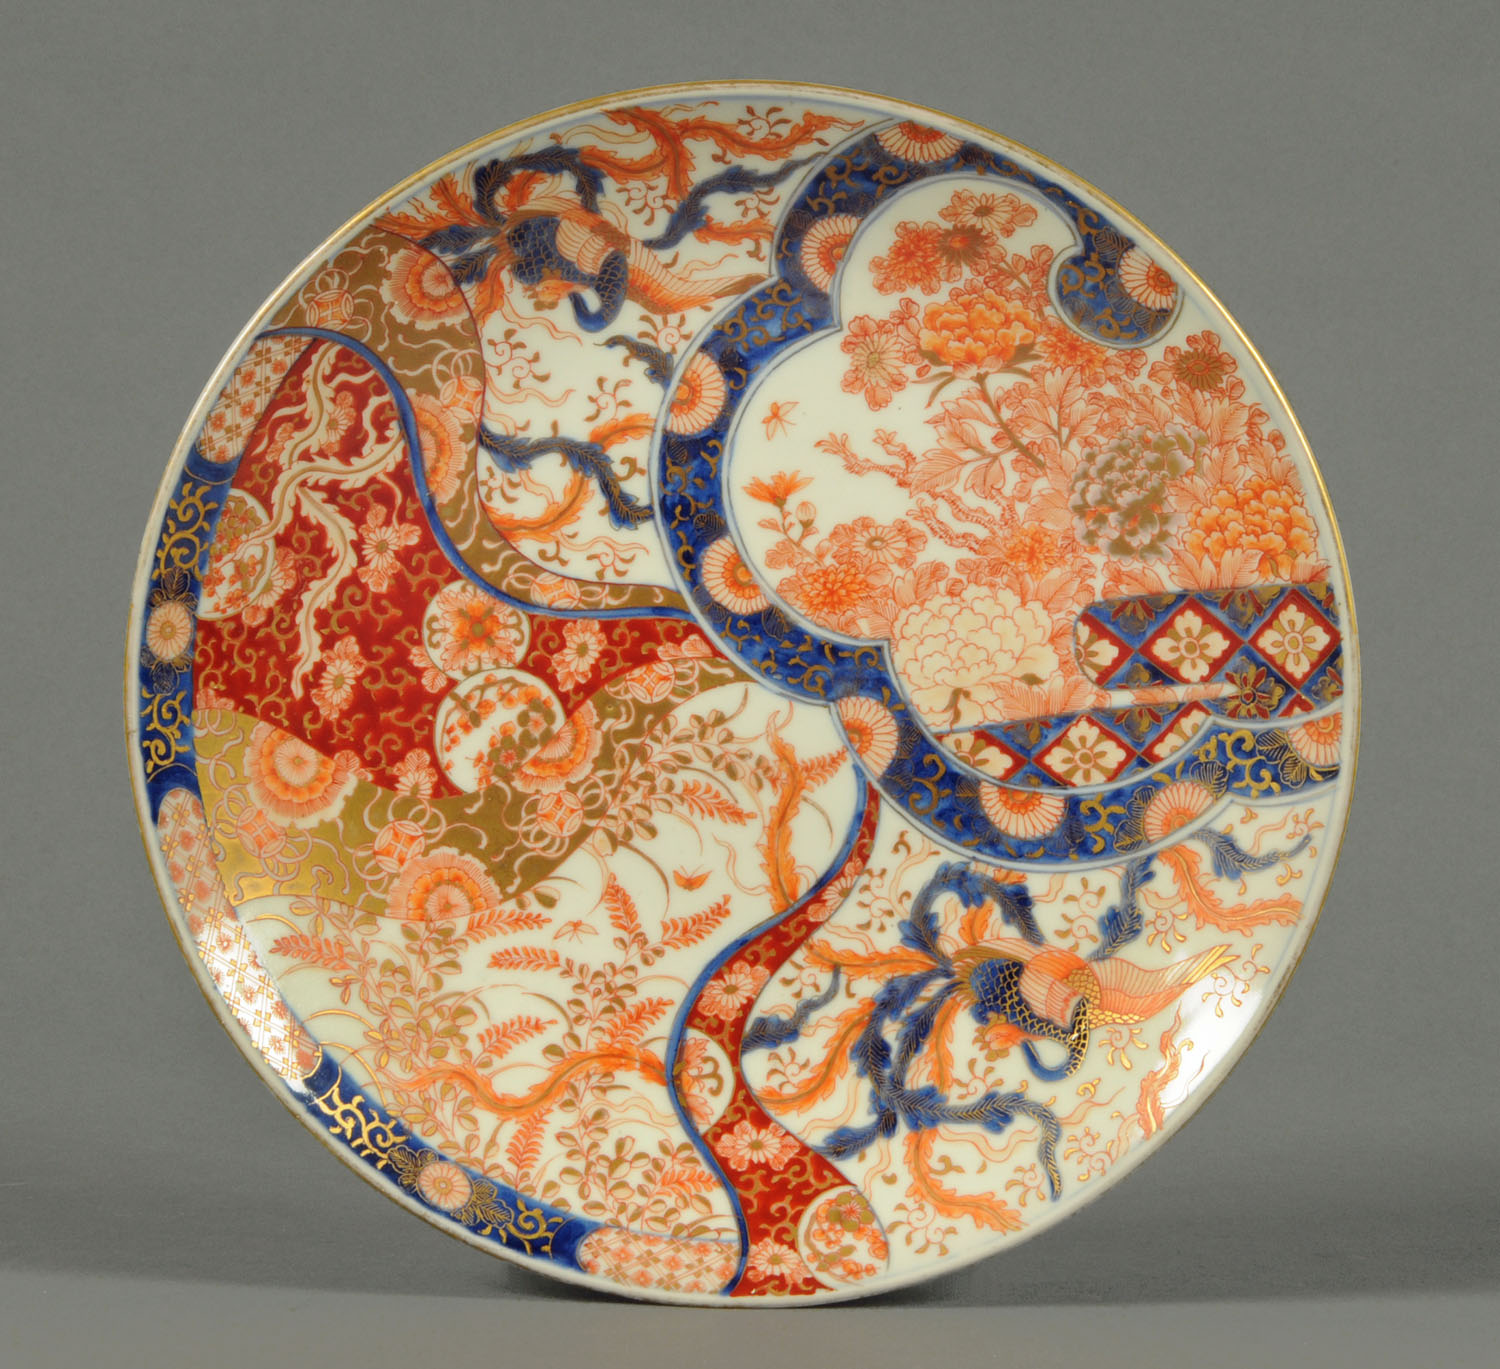 Lot 10 - A Japanese Imari plate, late 19th century, decorated in typical Imari colours with gilding.